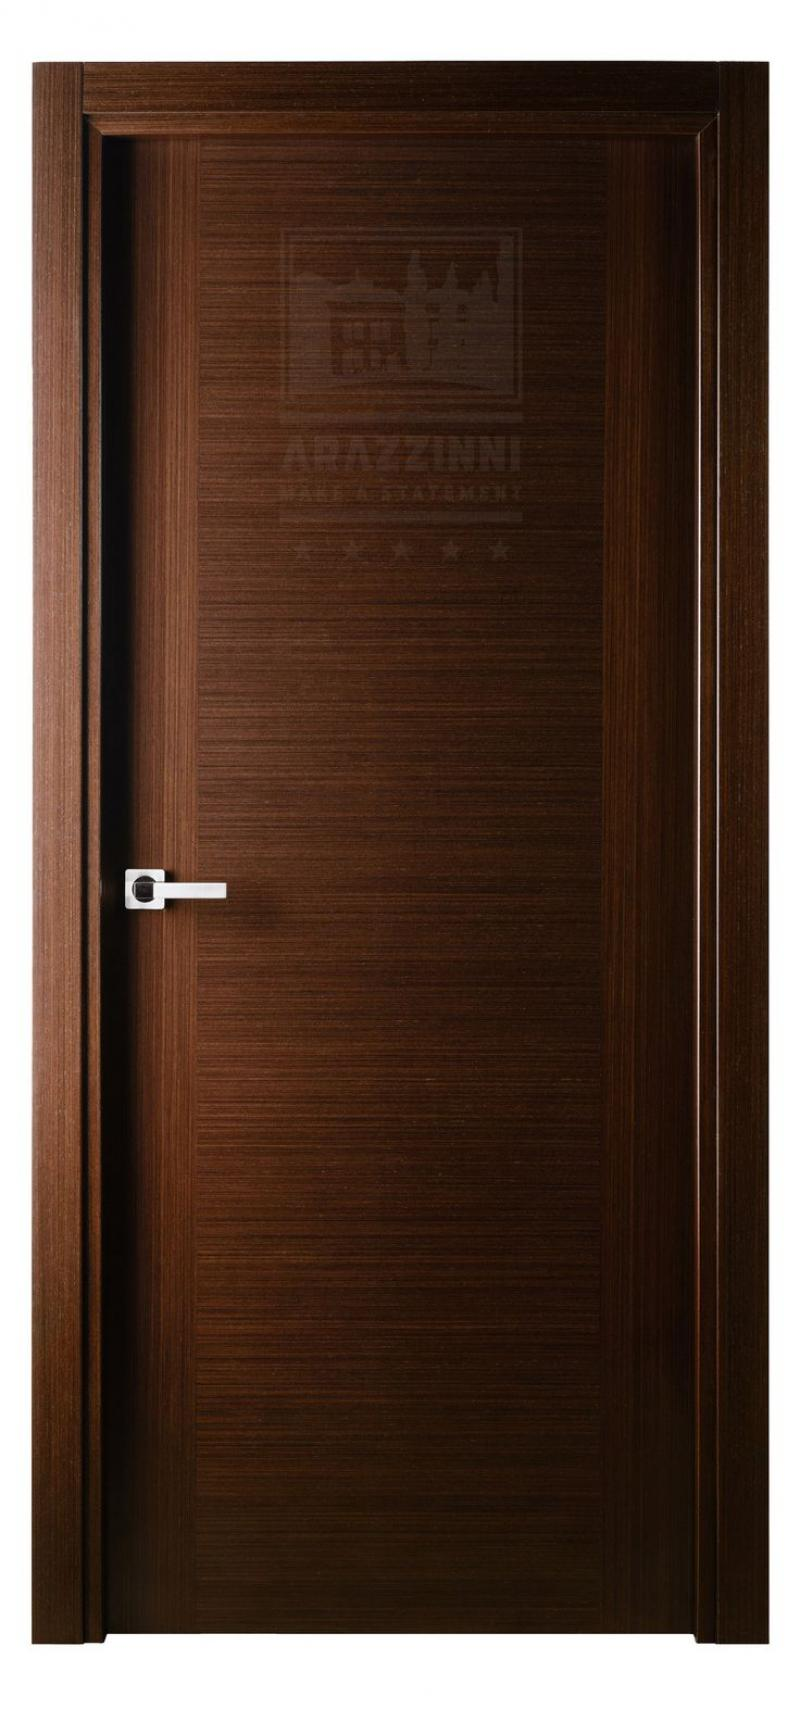 Main Door Design Door Design Modern Wood: 93+ Modern Interior Main Door Designs Of Glass & Wood For Home